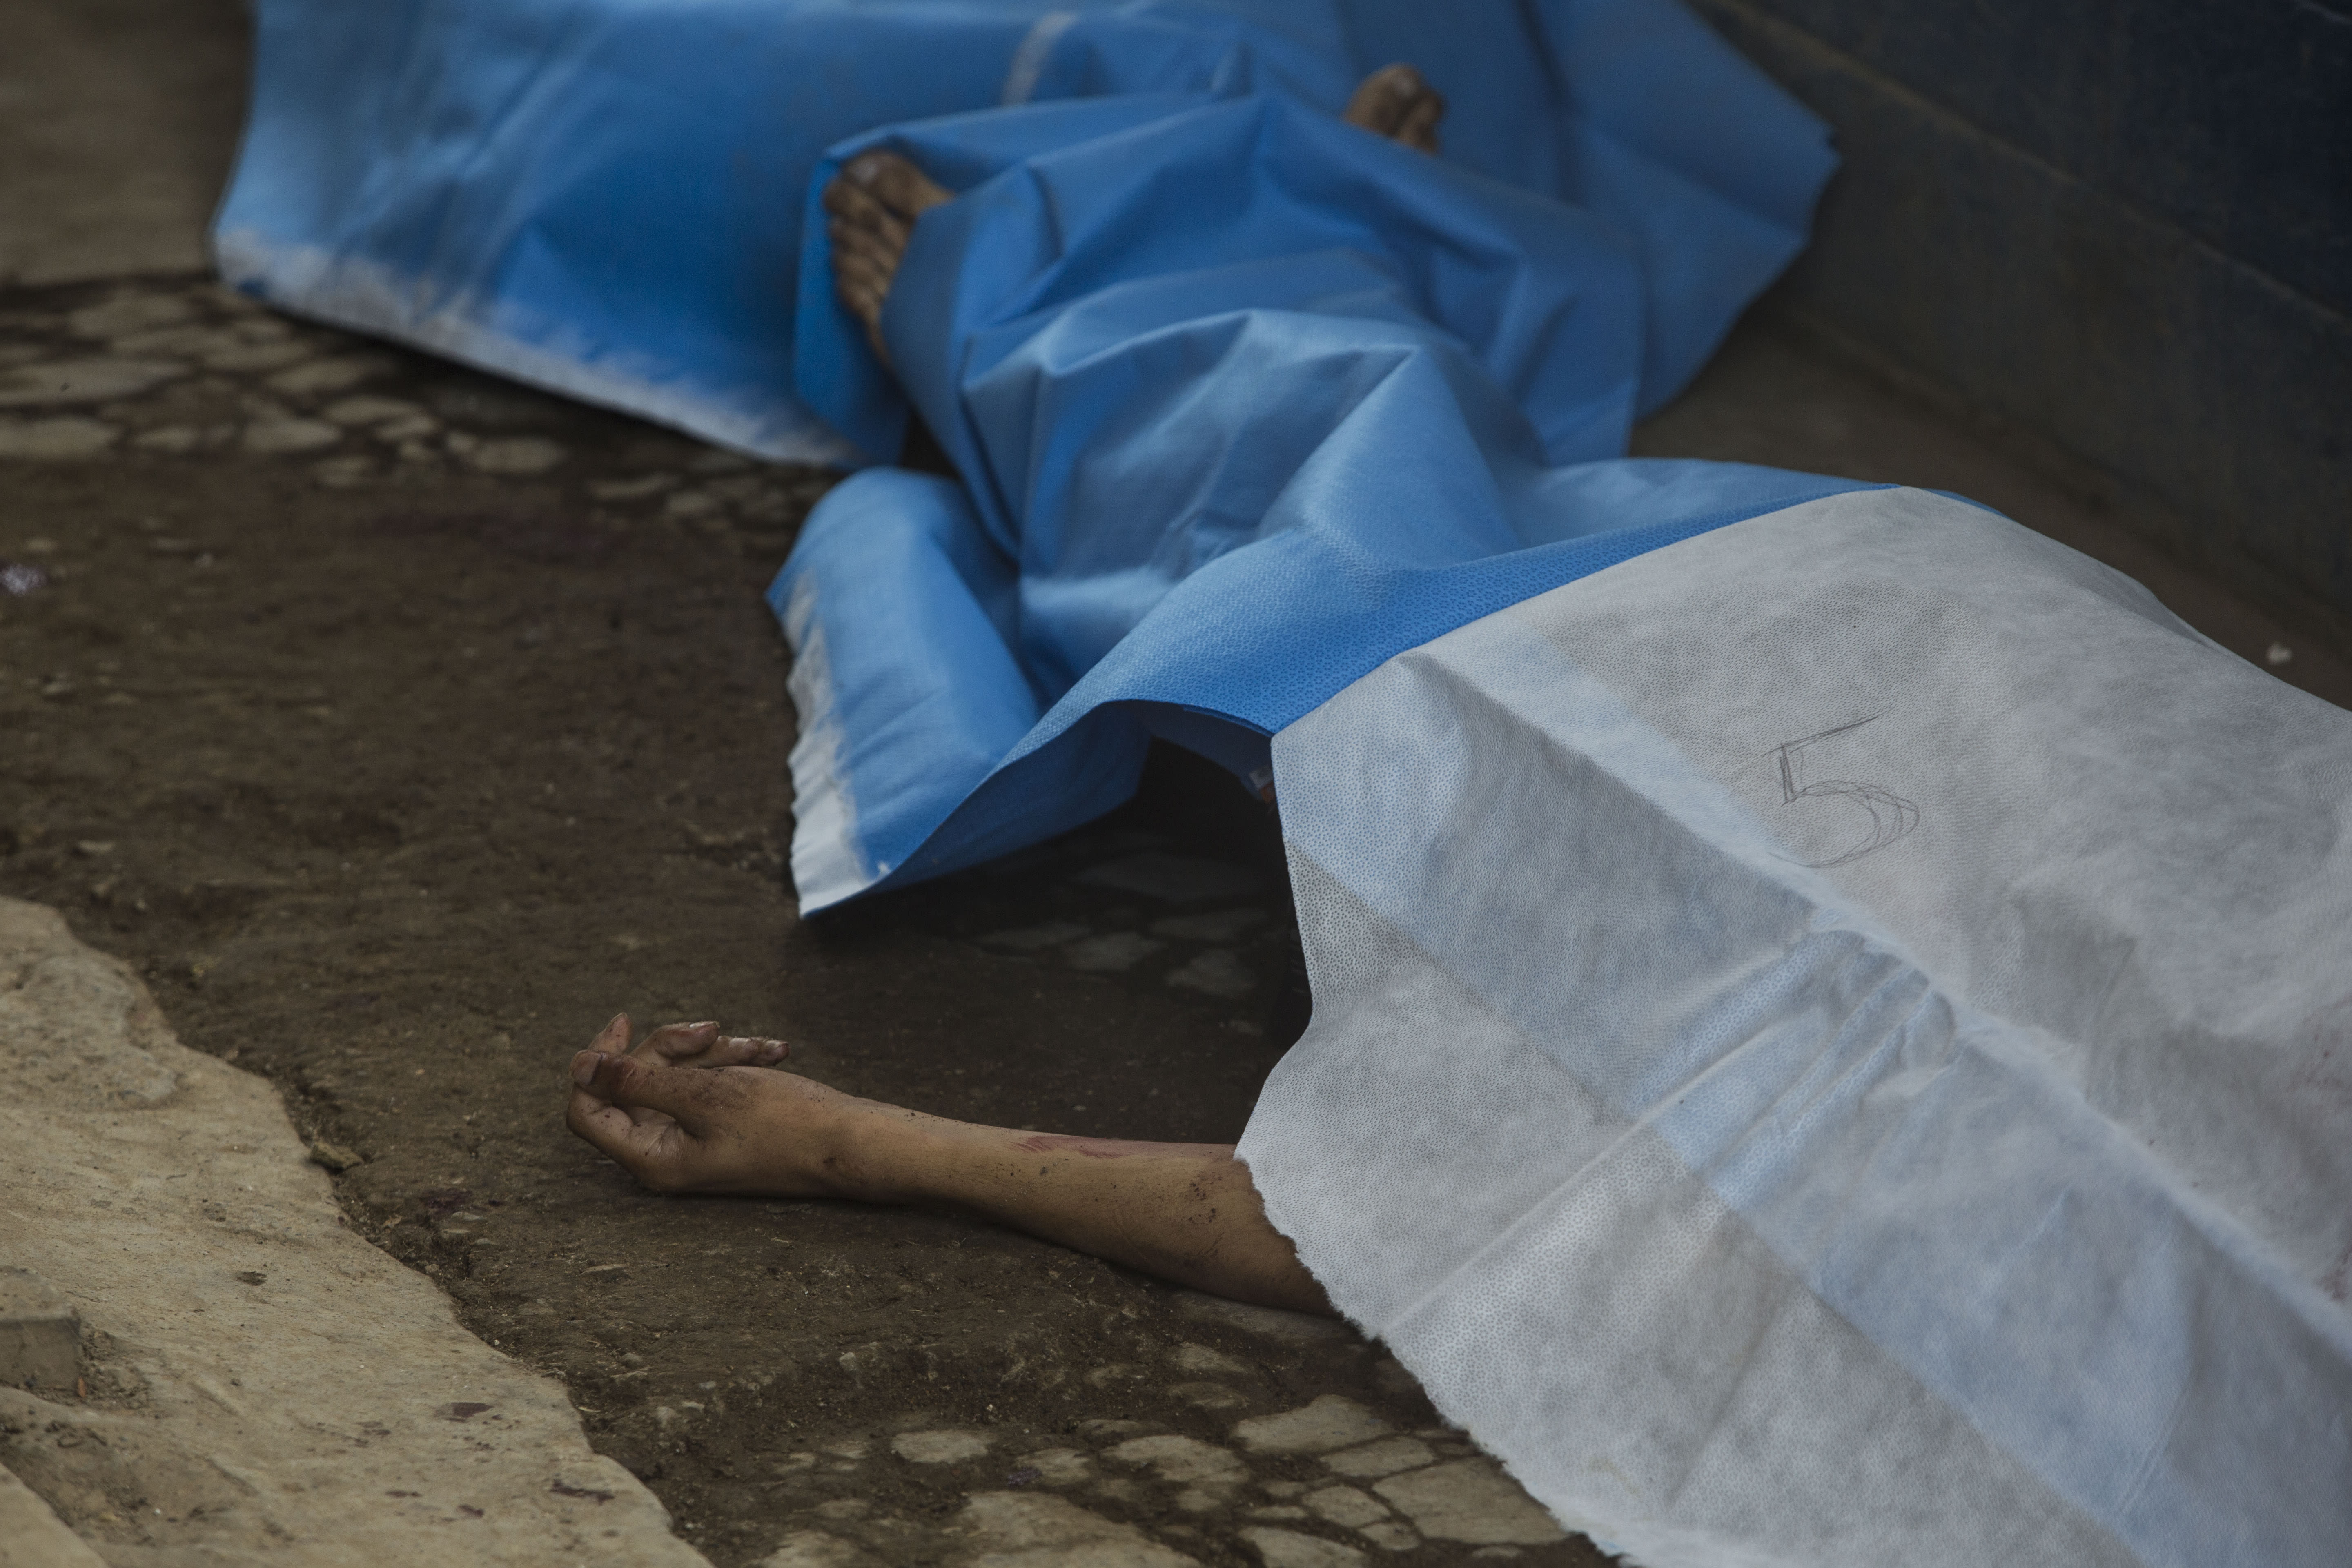 Covered bodies lie inside the entrance area of the Pavon Rehabilitation Model Farm after a shooting inside the jail in Fraijanes, Guatemala, Tuesday, May 7, 2019. Gunfire during a riot in a Guatemala prison Tuesday left at least seven inmates dead and 10 wounded, authorities said. (AP Photo/Oliver De Ros)